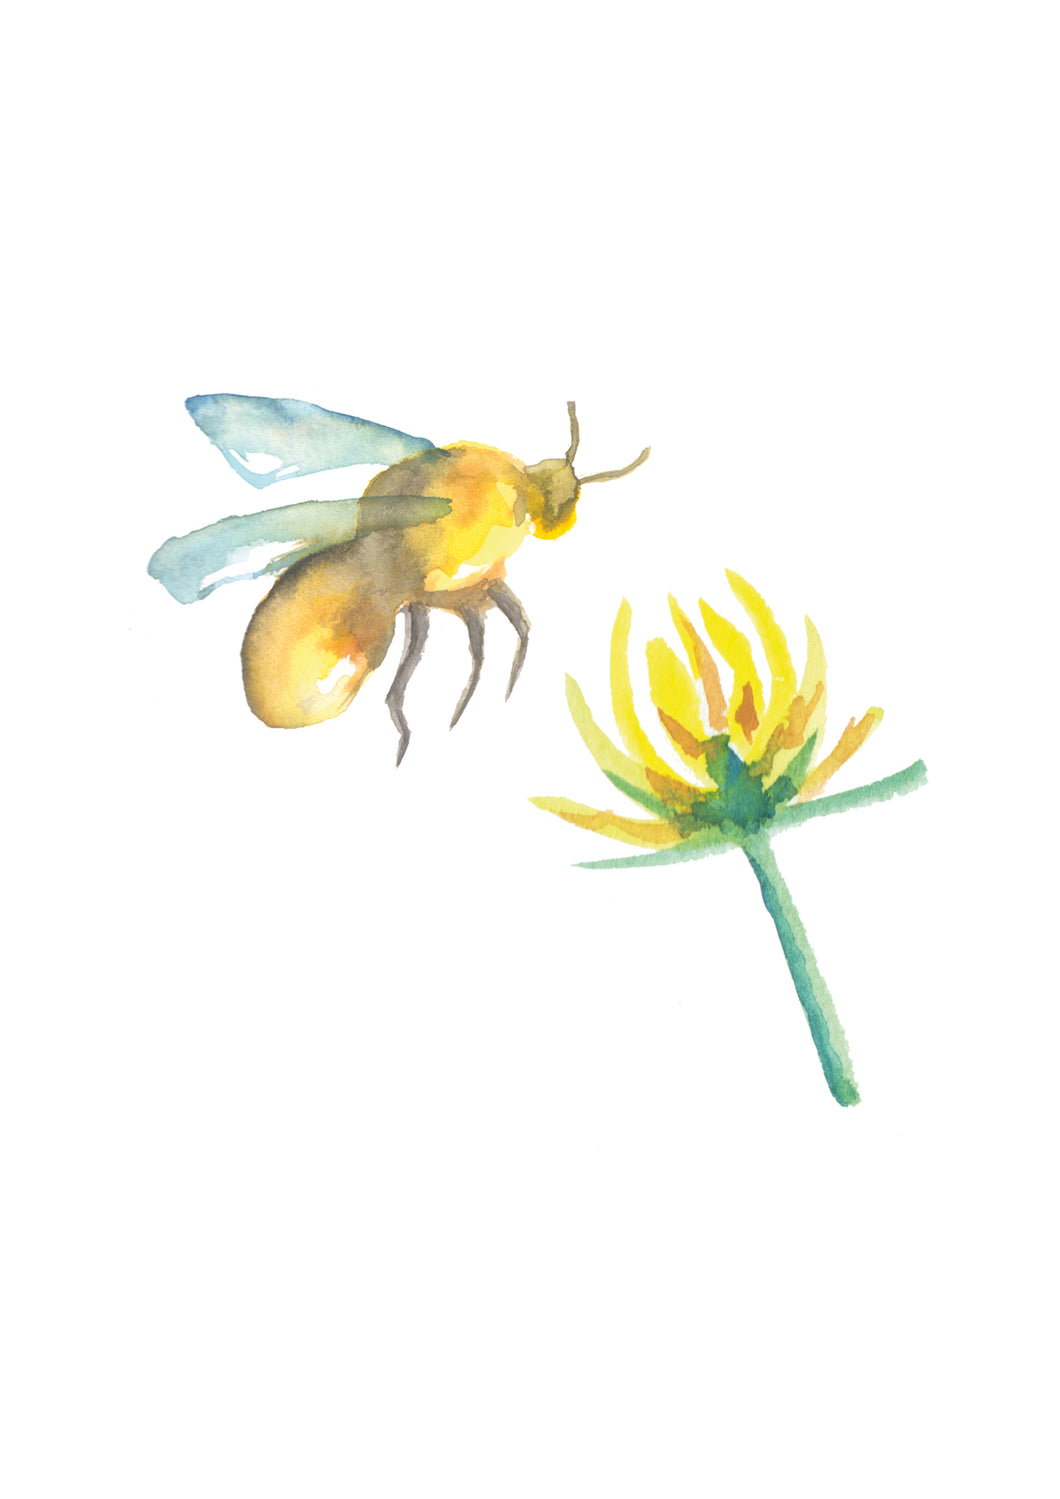 Bumblebee and Clover A4 Giclee Print